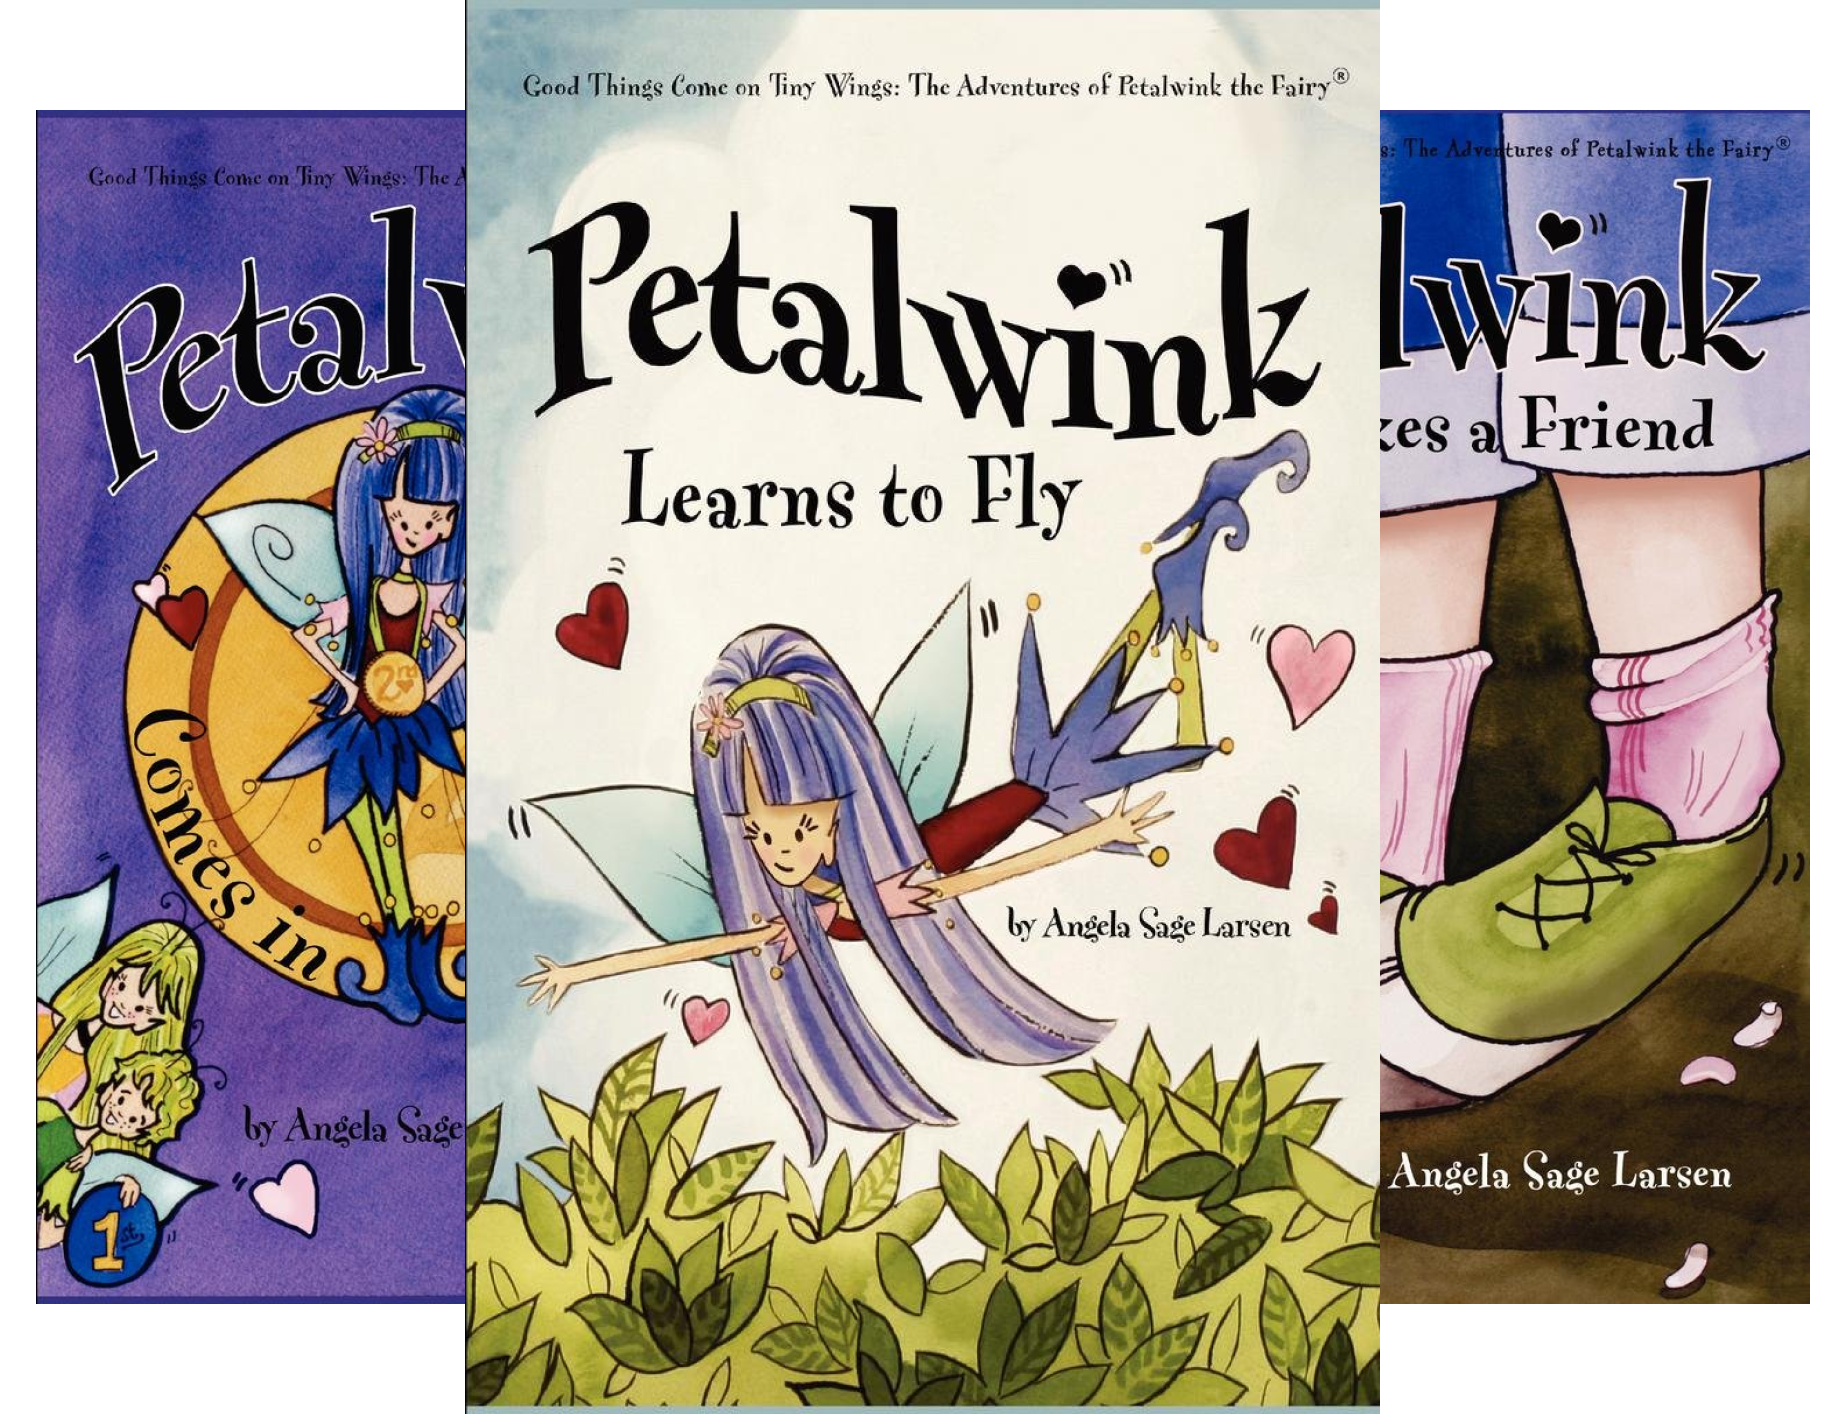 Good Things Come on Tiny Wings: The Adventures of Petalwink the Fairy (7 Book Series)